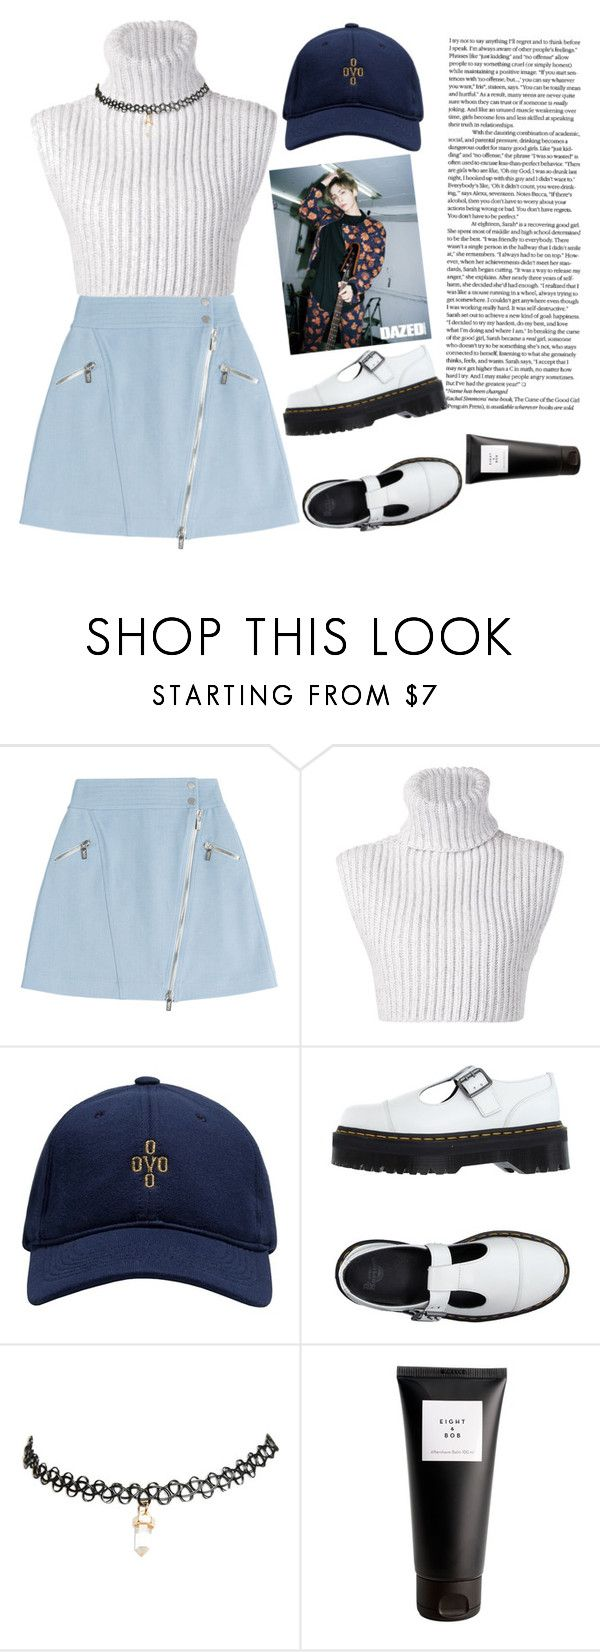 """""""Dazed"""" by jaya-bronson ❤ liked on Polyvore featuring Karl Lagerfeld, Baja East, October's Very Own, Dr. Martens, Wet Seal, Eight & Bob, women's clothing, women's fashion, women and female"""